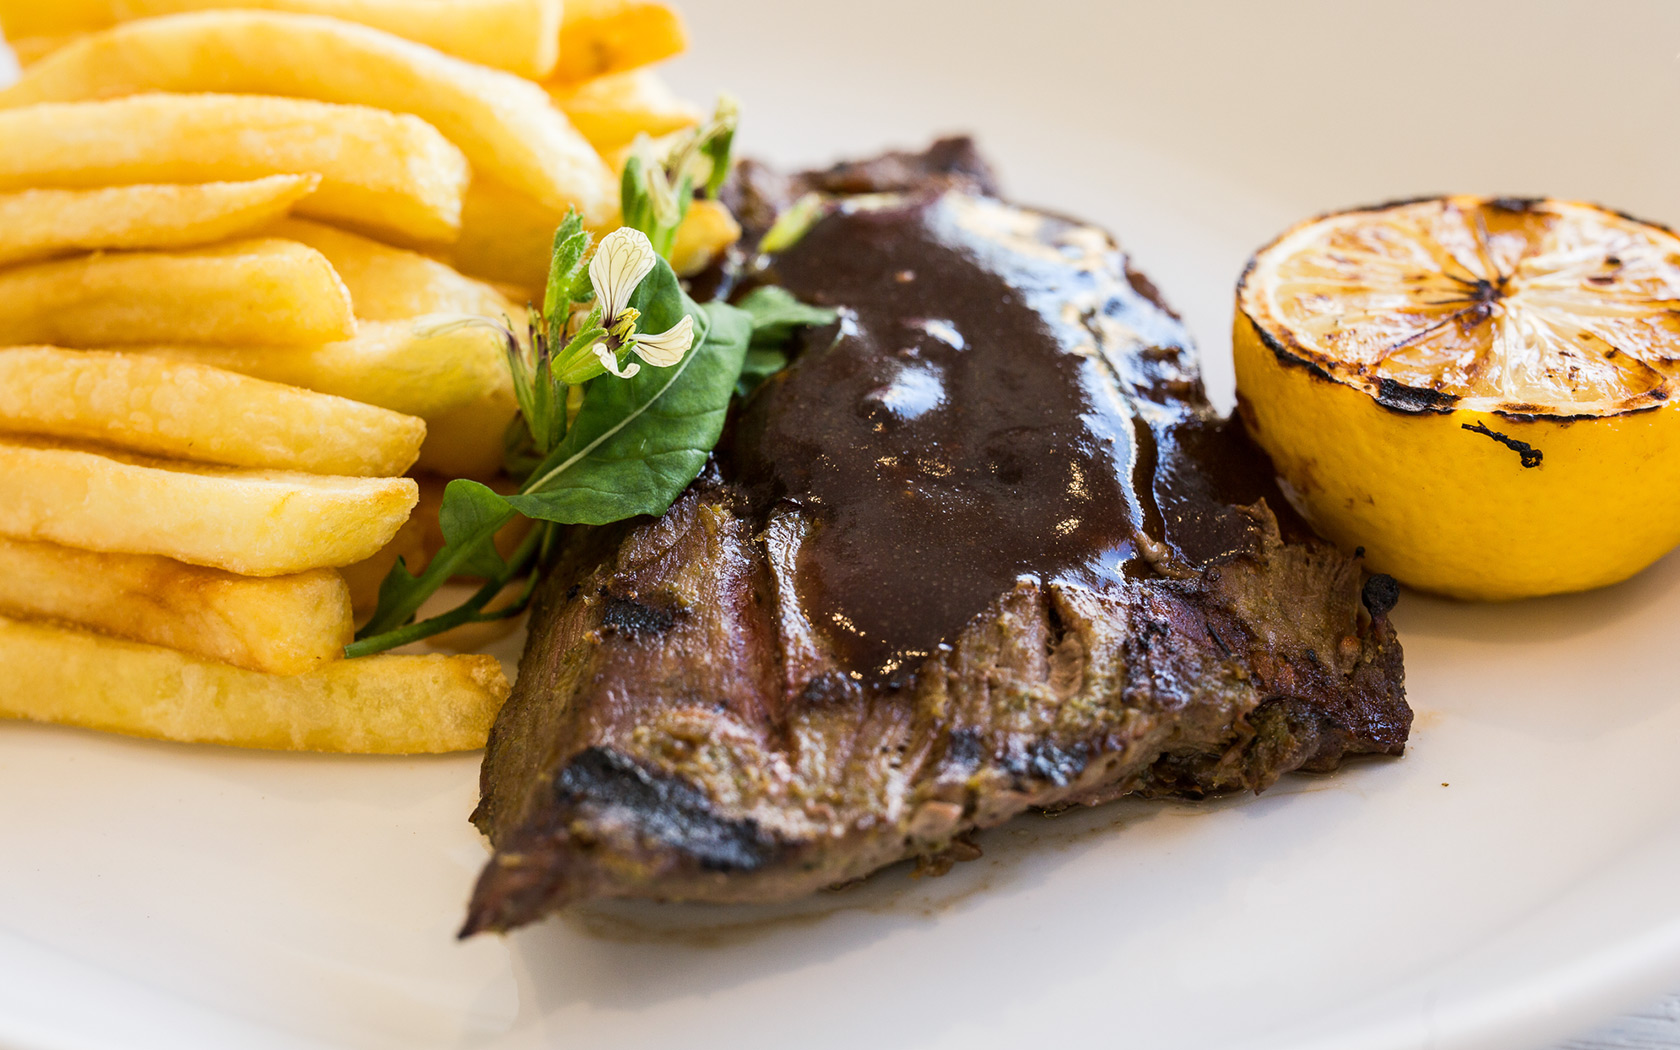 a steak with brown sauce next to a sliced charred lemon and french fries